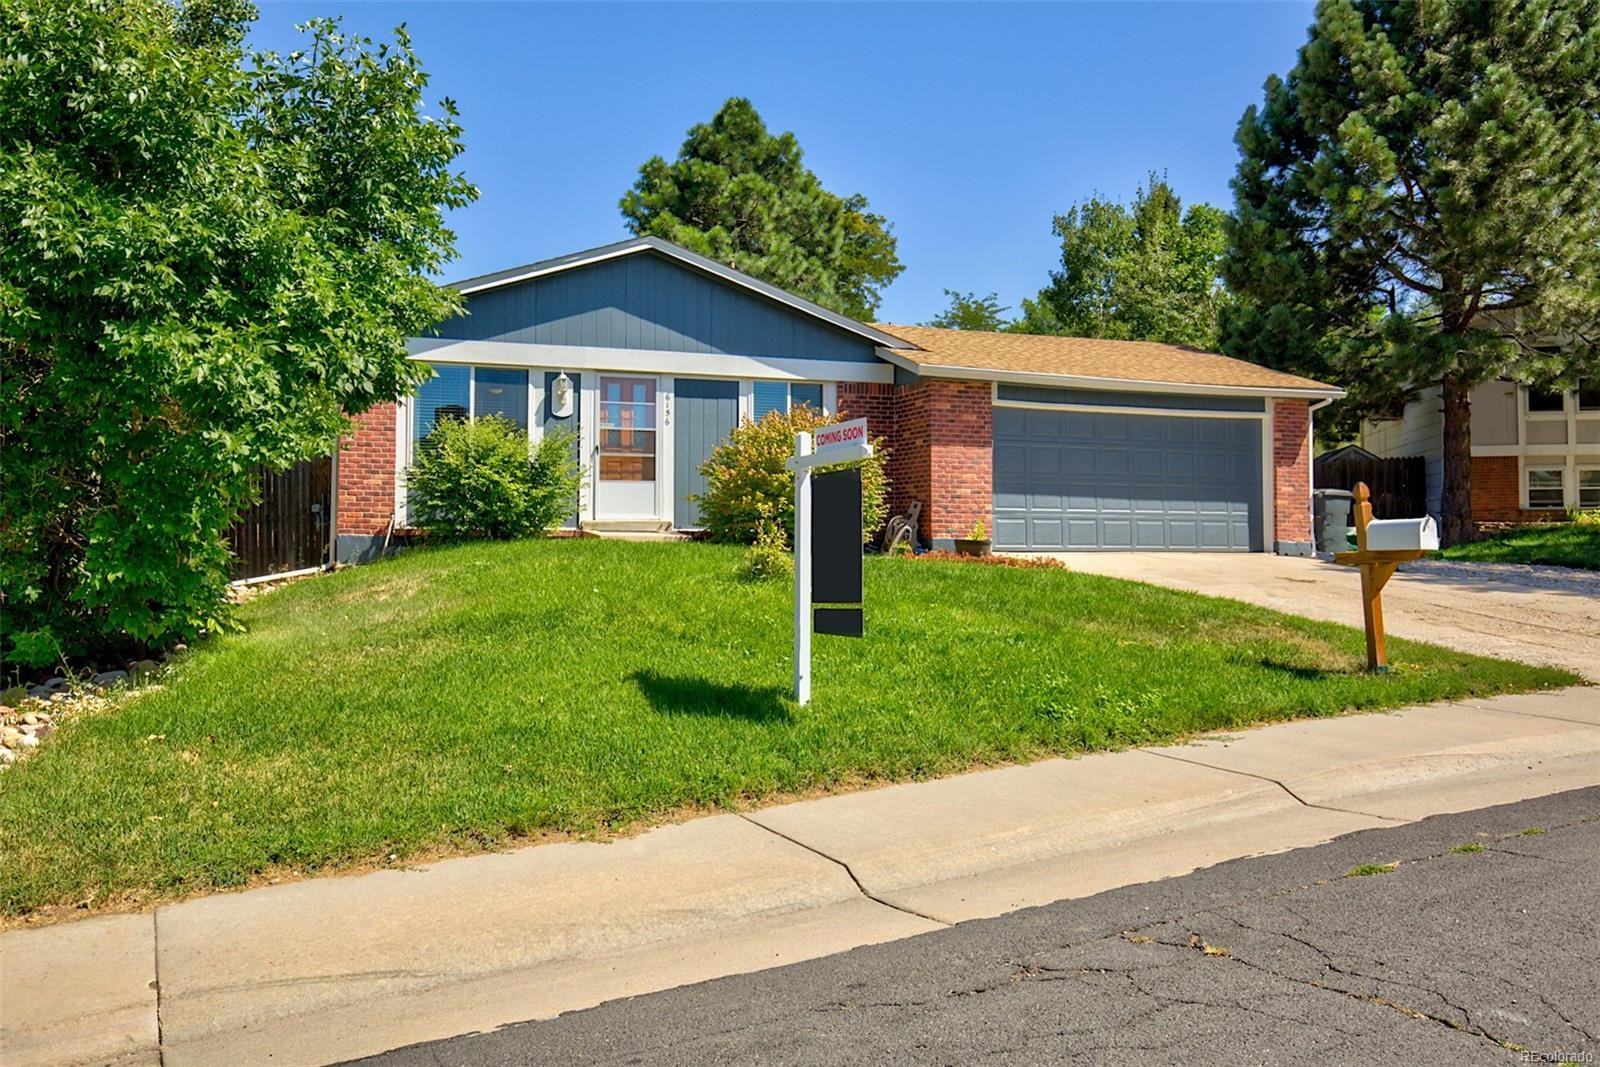 MLS# 5137325 - 26 - 6156 W 75th Place, Arvada, CO 80003